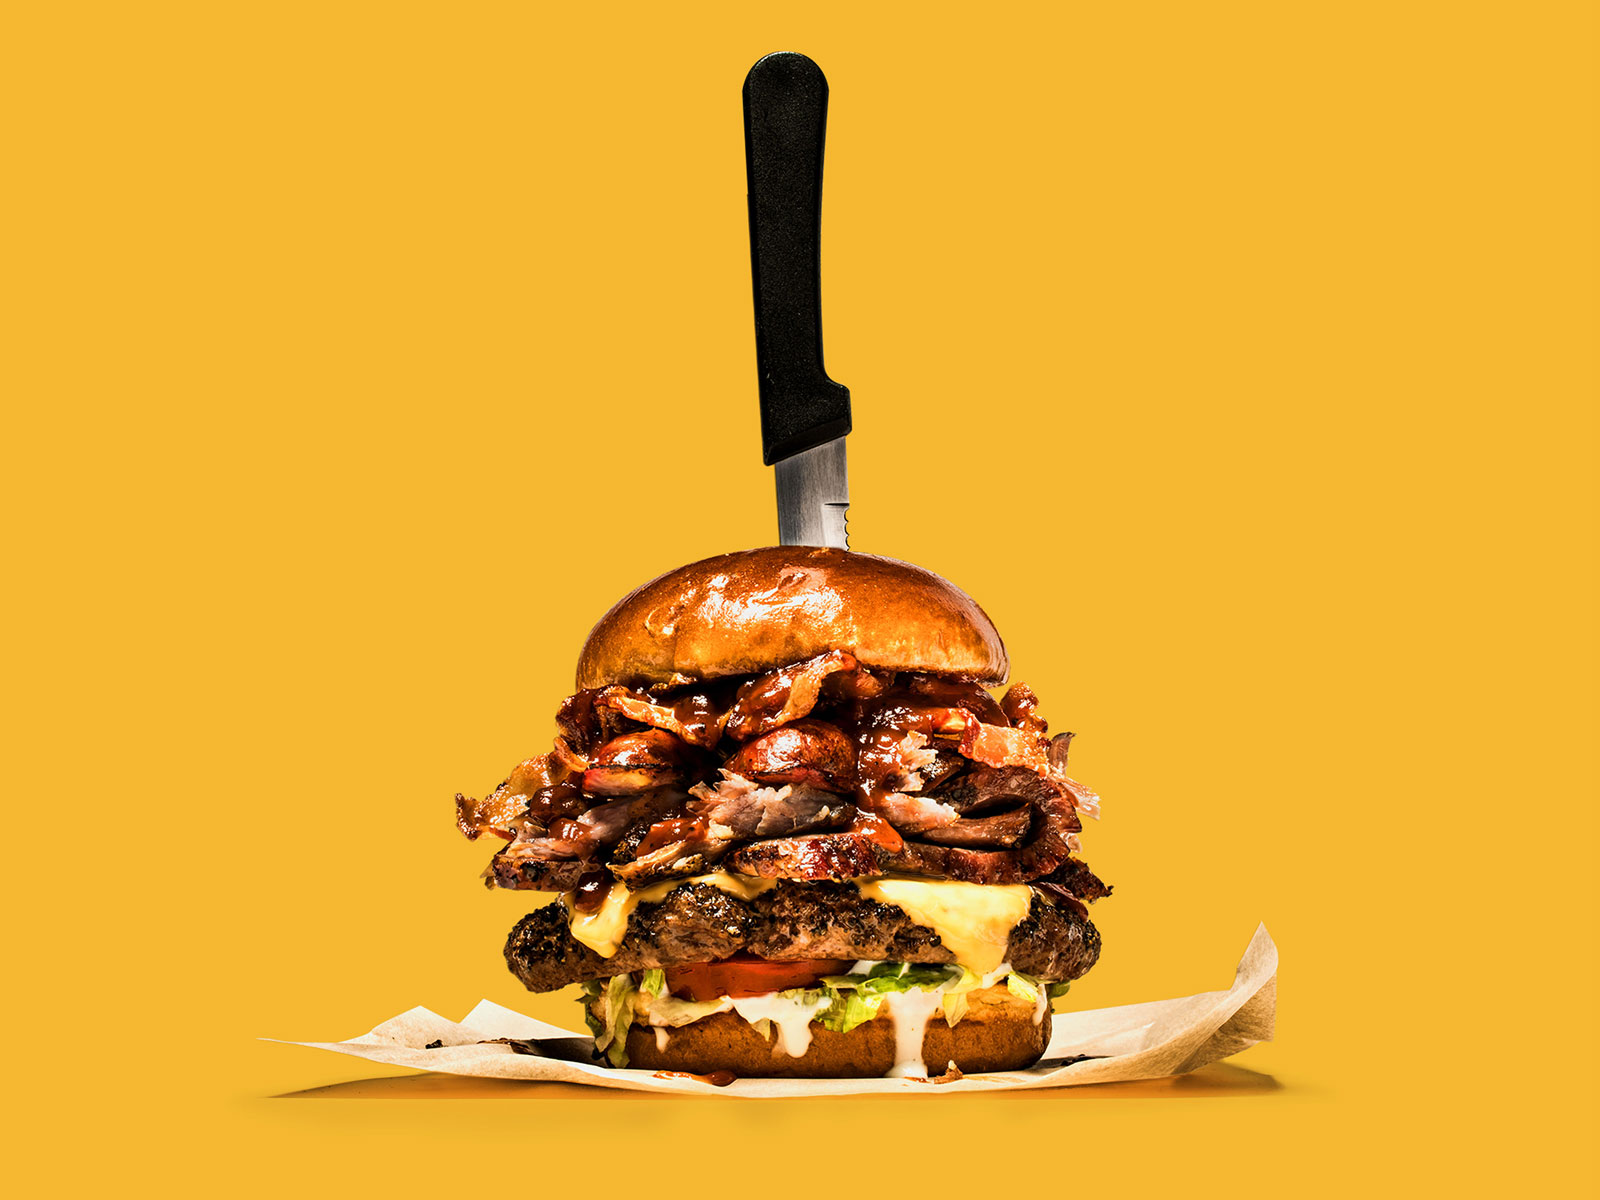 Chili's 5-Meat 'Boss Burger' Goes Nationwide